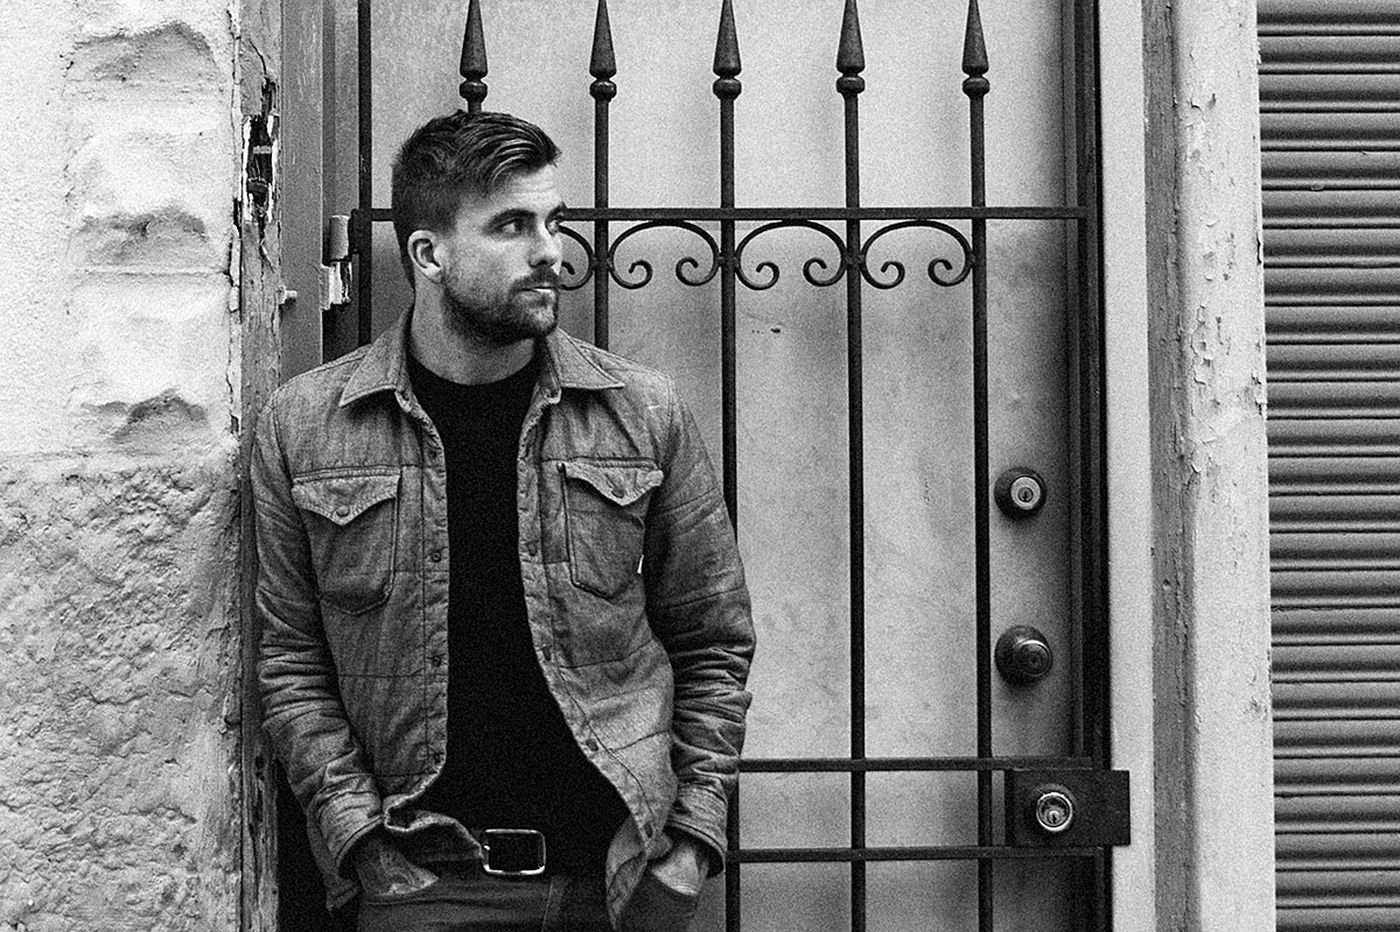 Doylestown's Anthony Green brings autobiographical 'Pixie Queen' to Union Transfer